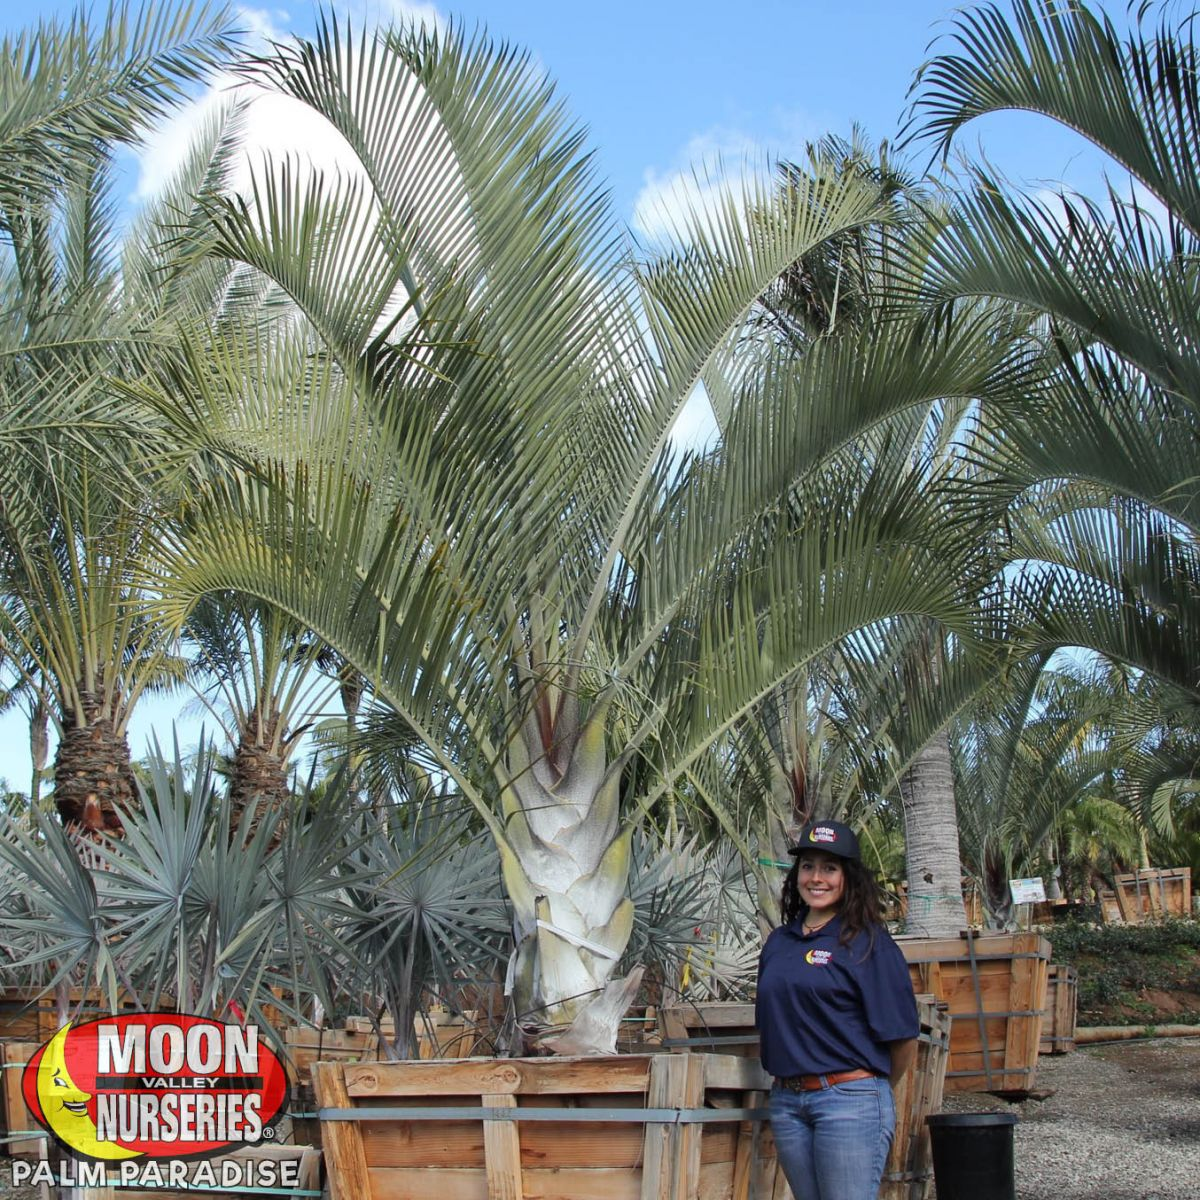 Triangle Palm Palm Tree Palm Paradise Nursery